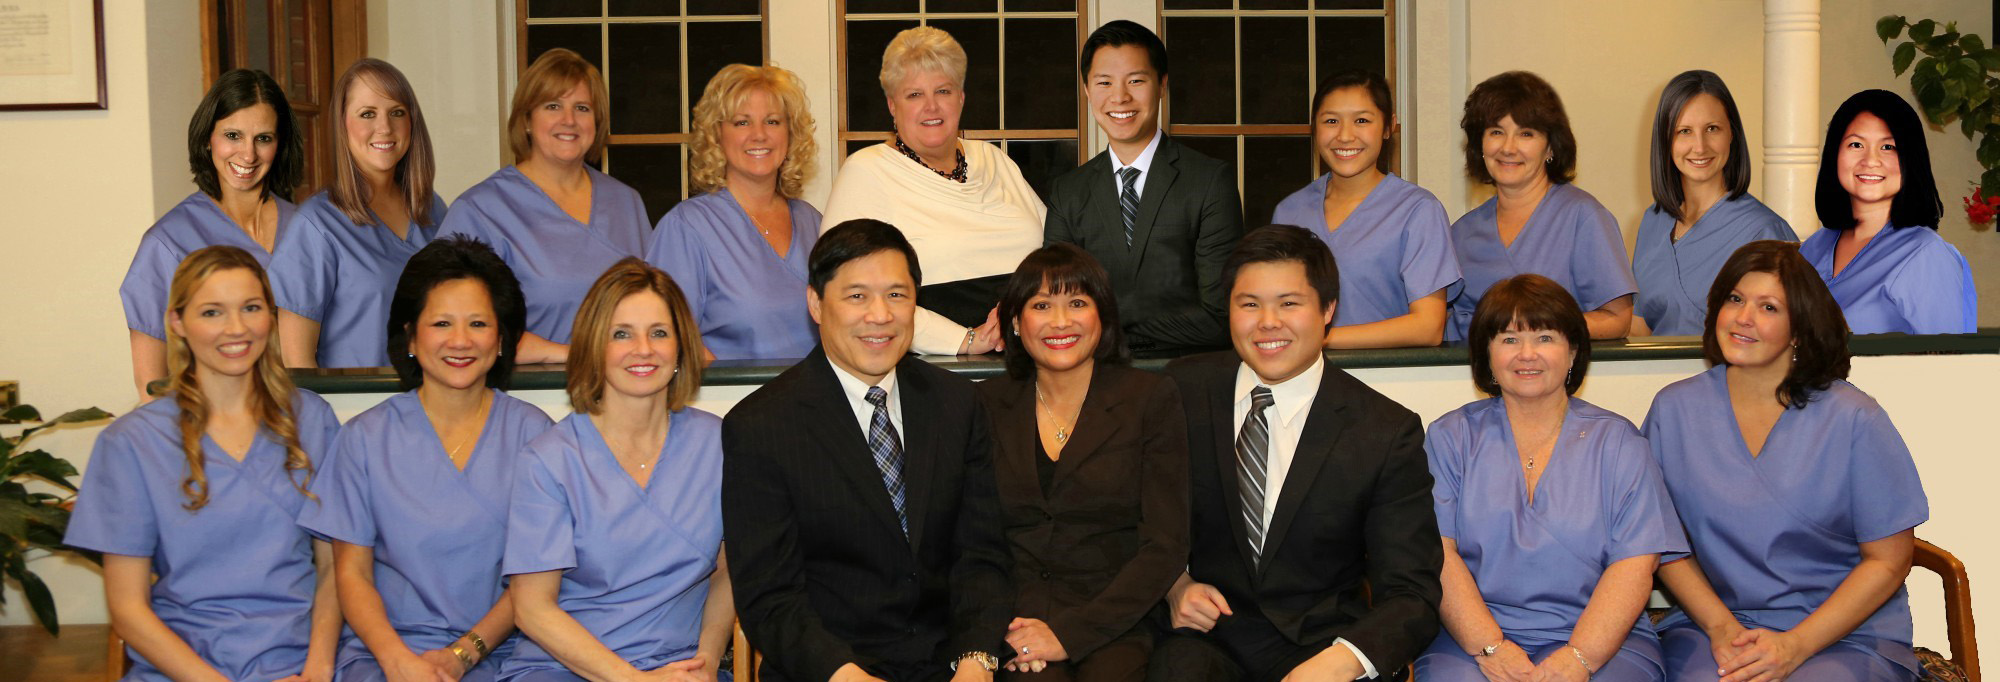 Pan Dental Care Team